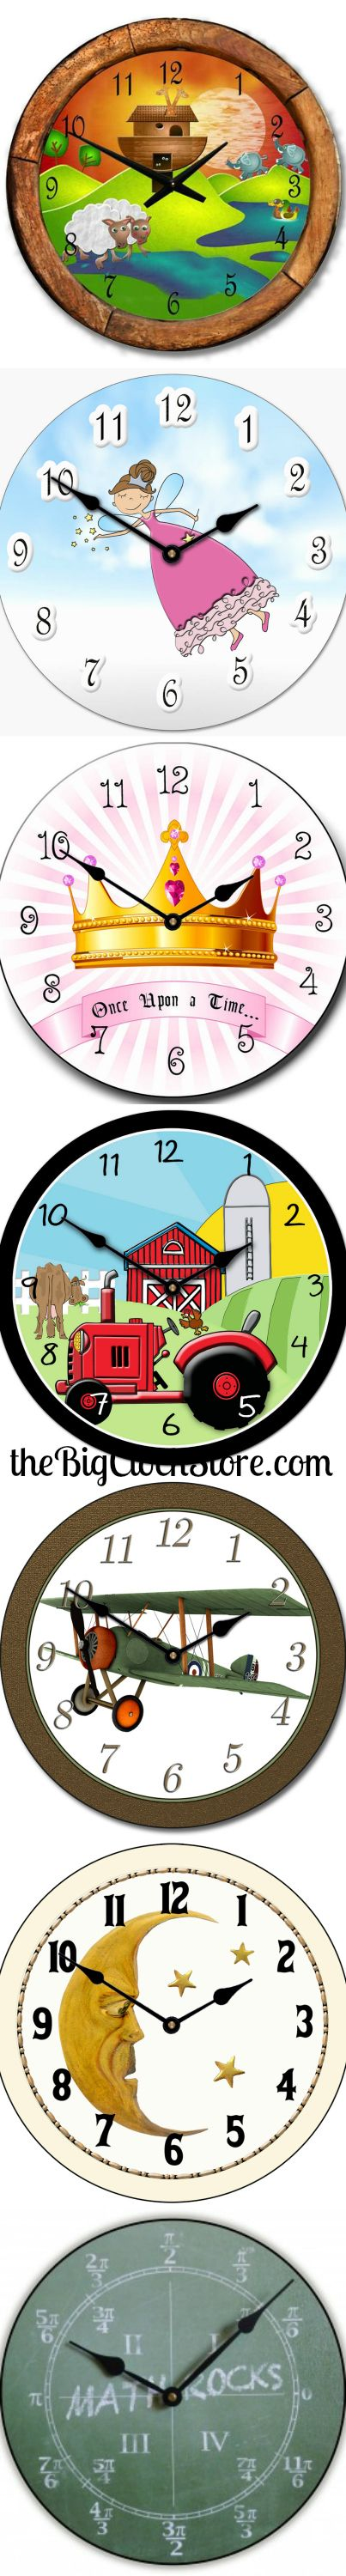 28 best kids clocks images on pinterest 3 years large walls and play up your kids room with unique wall clock purchase anything from a pretty in pink bow to a sports clock we have complete collection of kids clocks amipublicfo Images